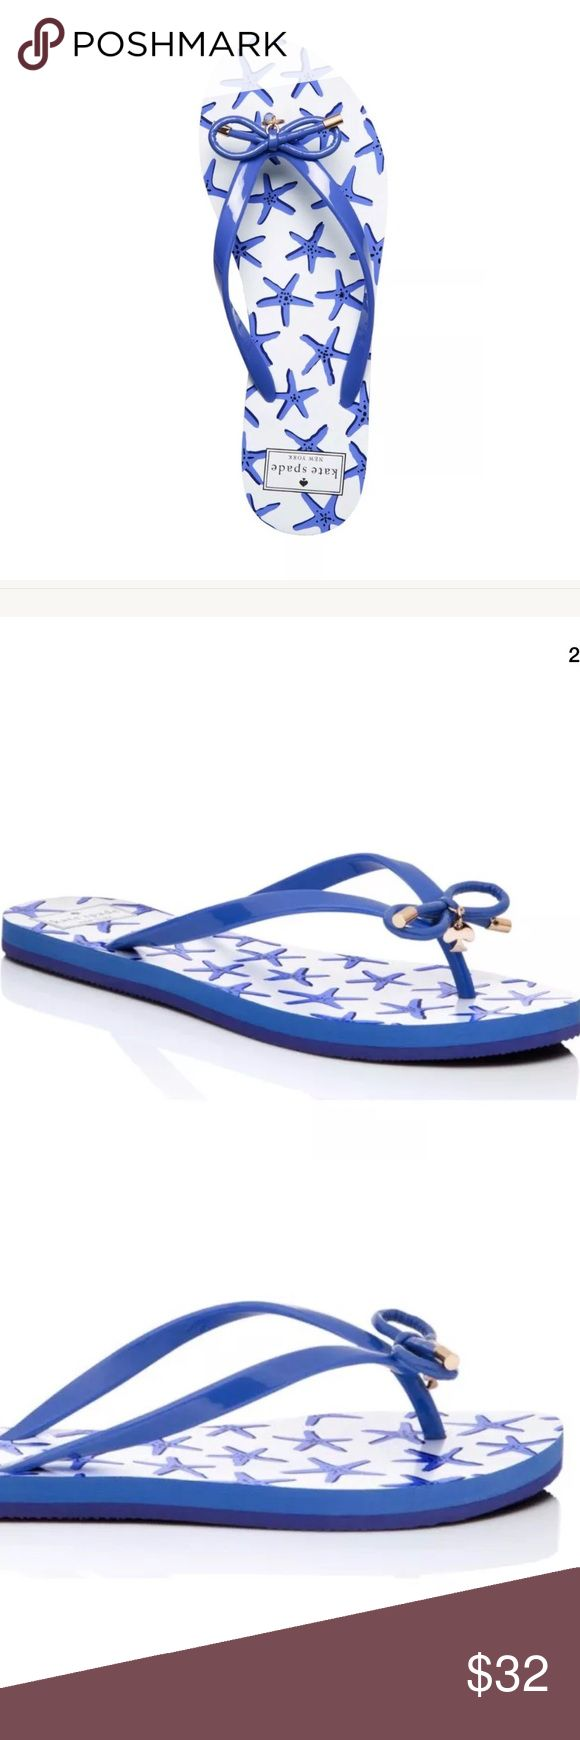 Kate Spade Nova Star Bow Flip Flop Sandals 9M NWOB Kate Spade New York Nova Star Fish Bow Thong Blue Flip Flop Sandals 9M NWOB $59   description  featuring a sole decorated with azure starfish and a bow-bedecked strap, these flip-flops can go from a day at the beach to dinner on the boardwalk without missing a step!   Brand new without tags or box. Never been worn before. kate spade Shoes Sandals